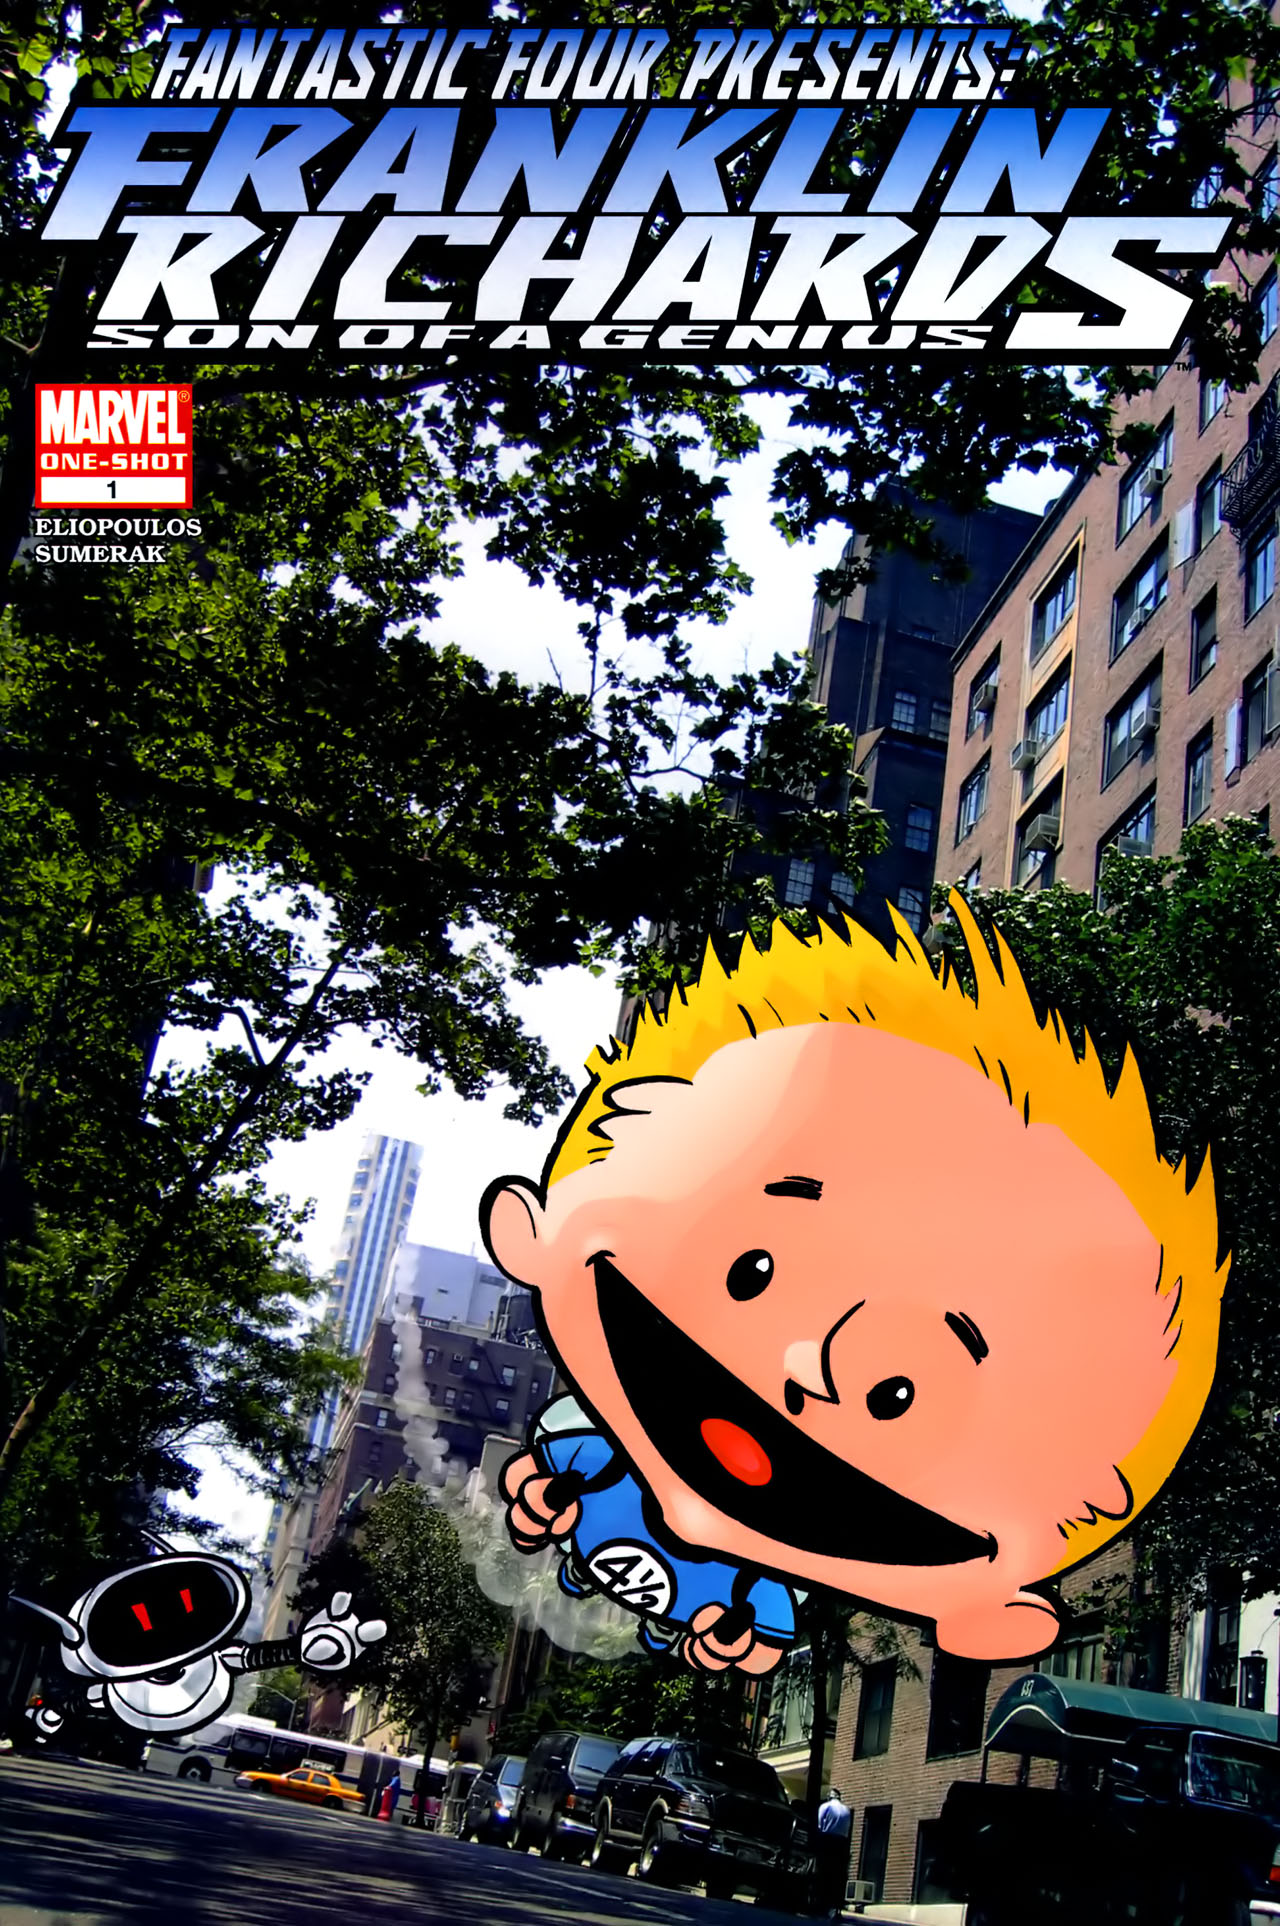 Fantastic Four Presents Franklin Richards: Son of a Genius Full Page 1